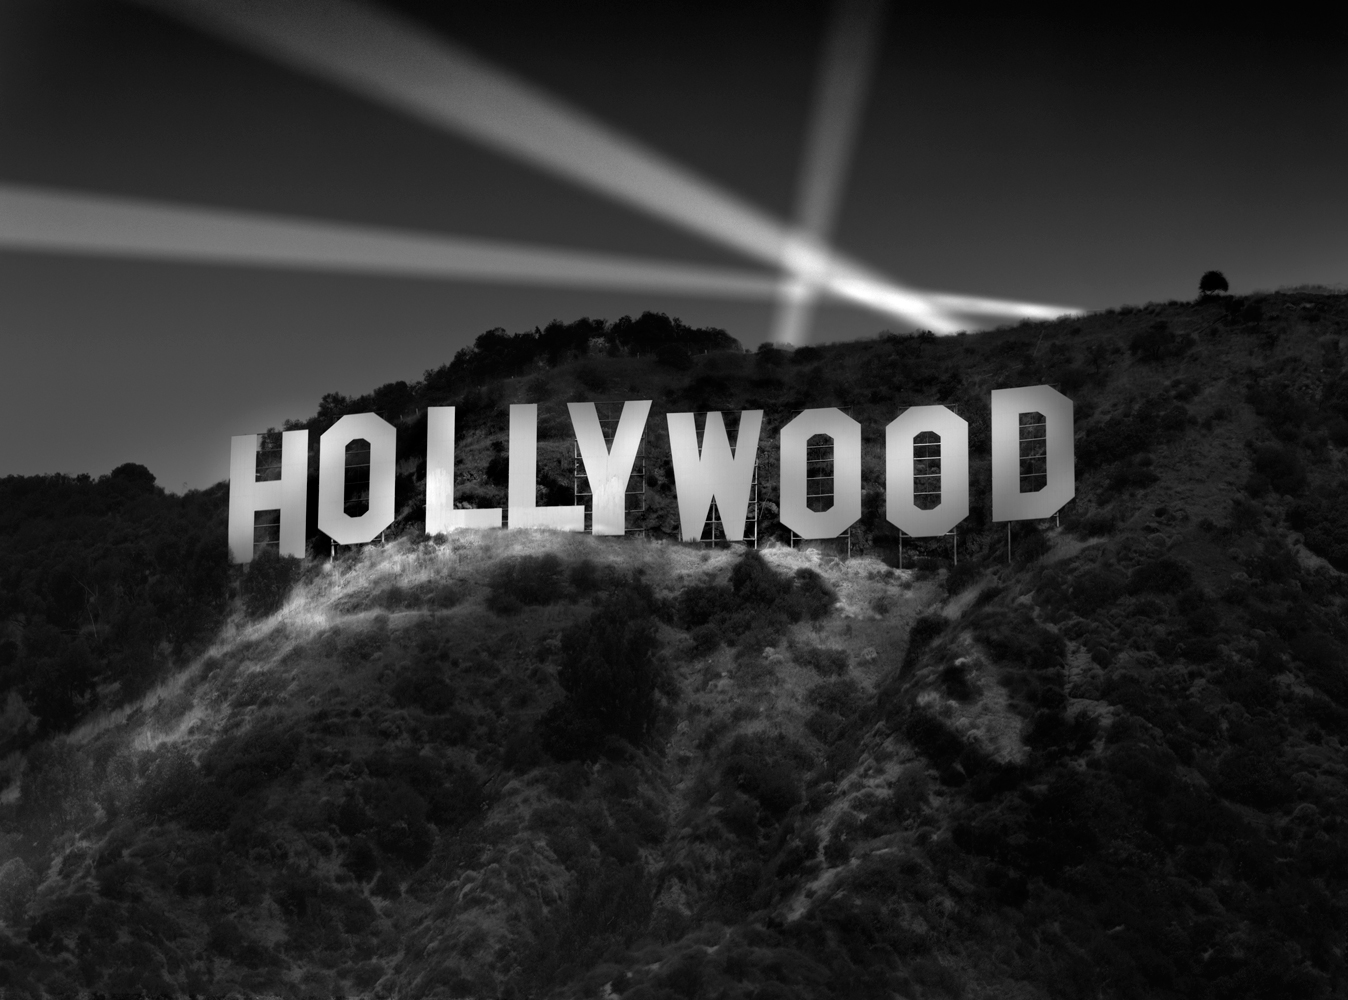 Richard-Lund-hollywood-sign-at-night.jpg